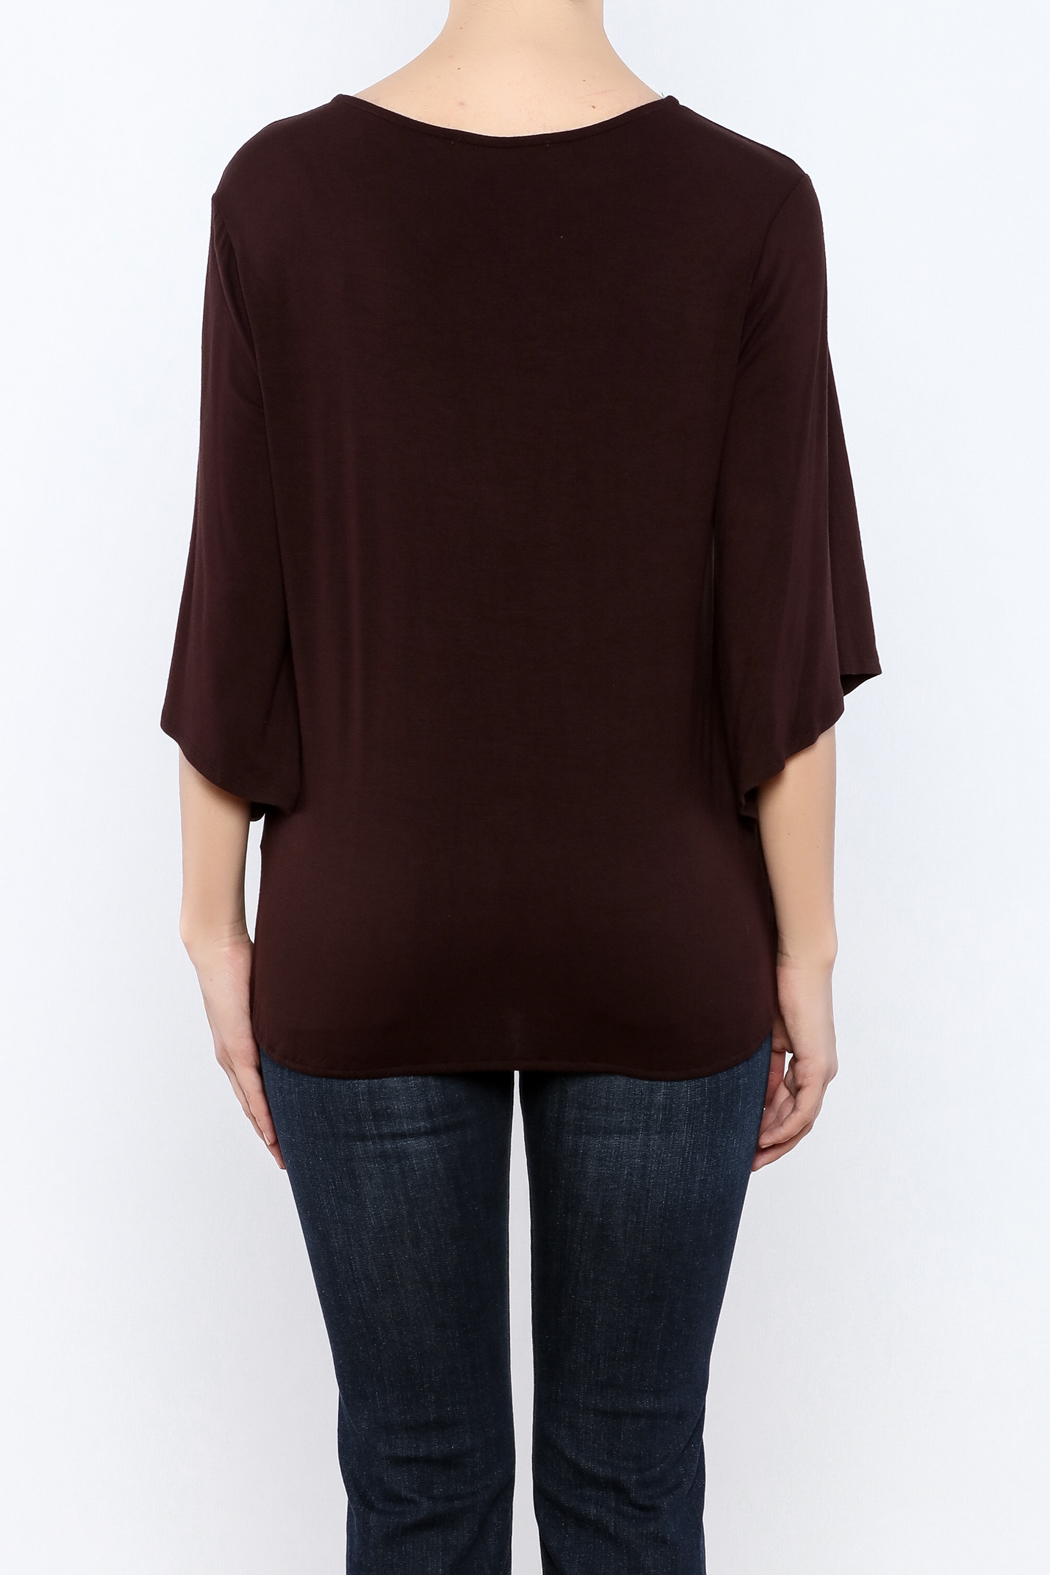 Veronica M Versatile Surplus Top - Back Cropped Image